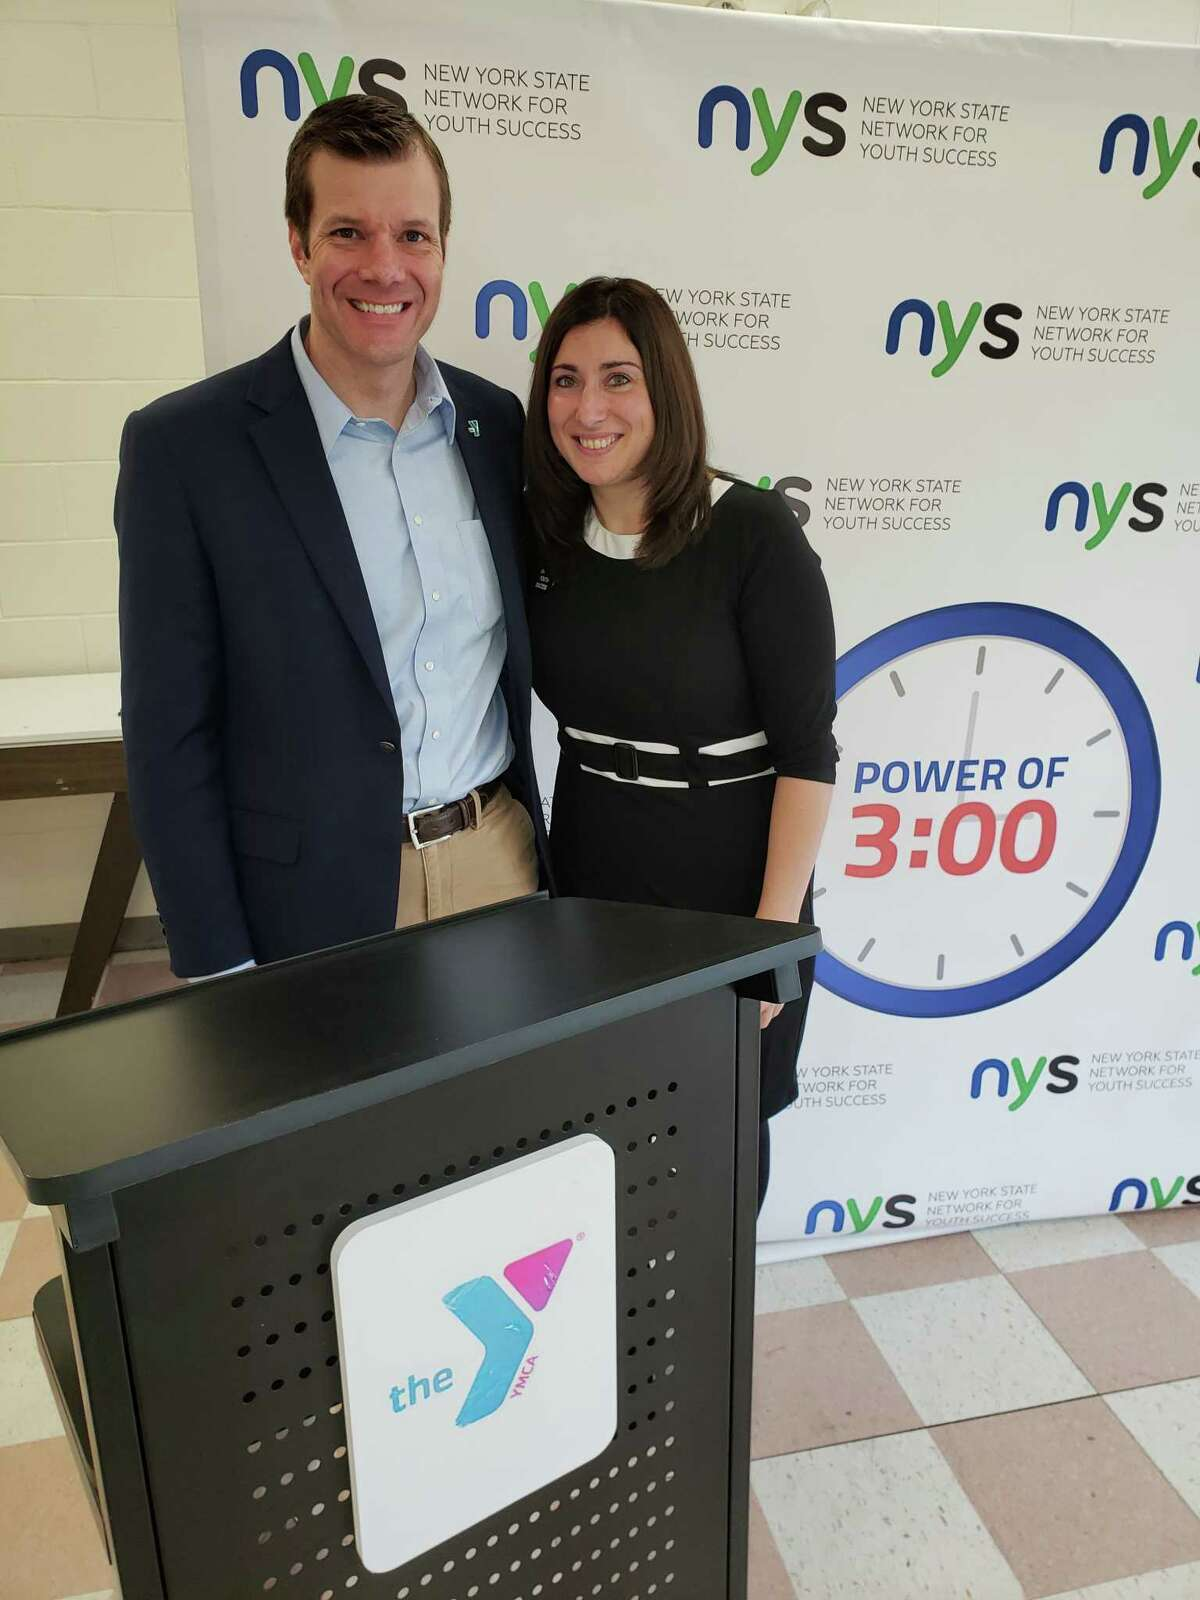 Kyle Stewart, Executive Director, Alliance of NYS YMCAs and and Kelly Sturgis, Executive Director of the NYS Network for Youth Success, attend the March legislative breakfast. (Photo provided)